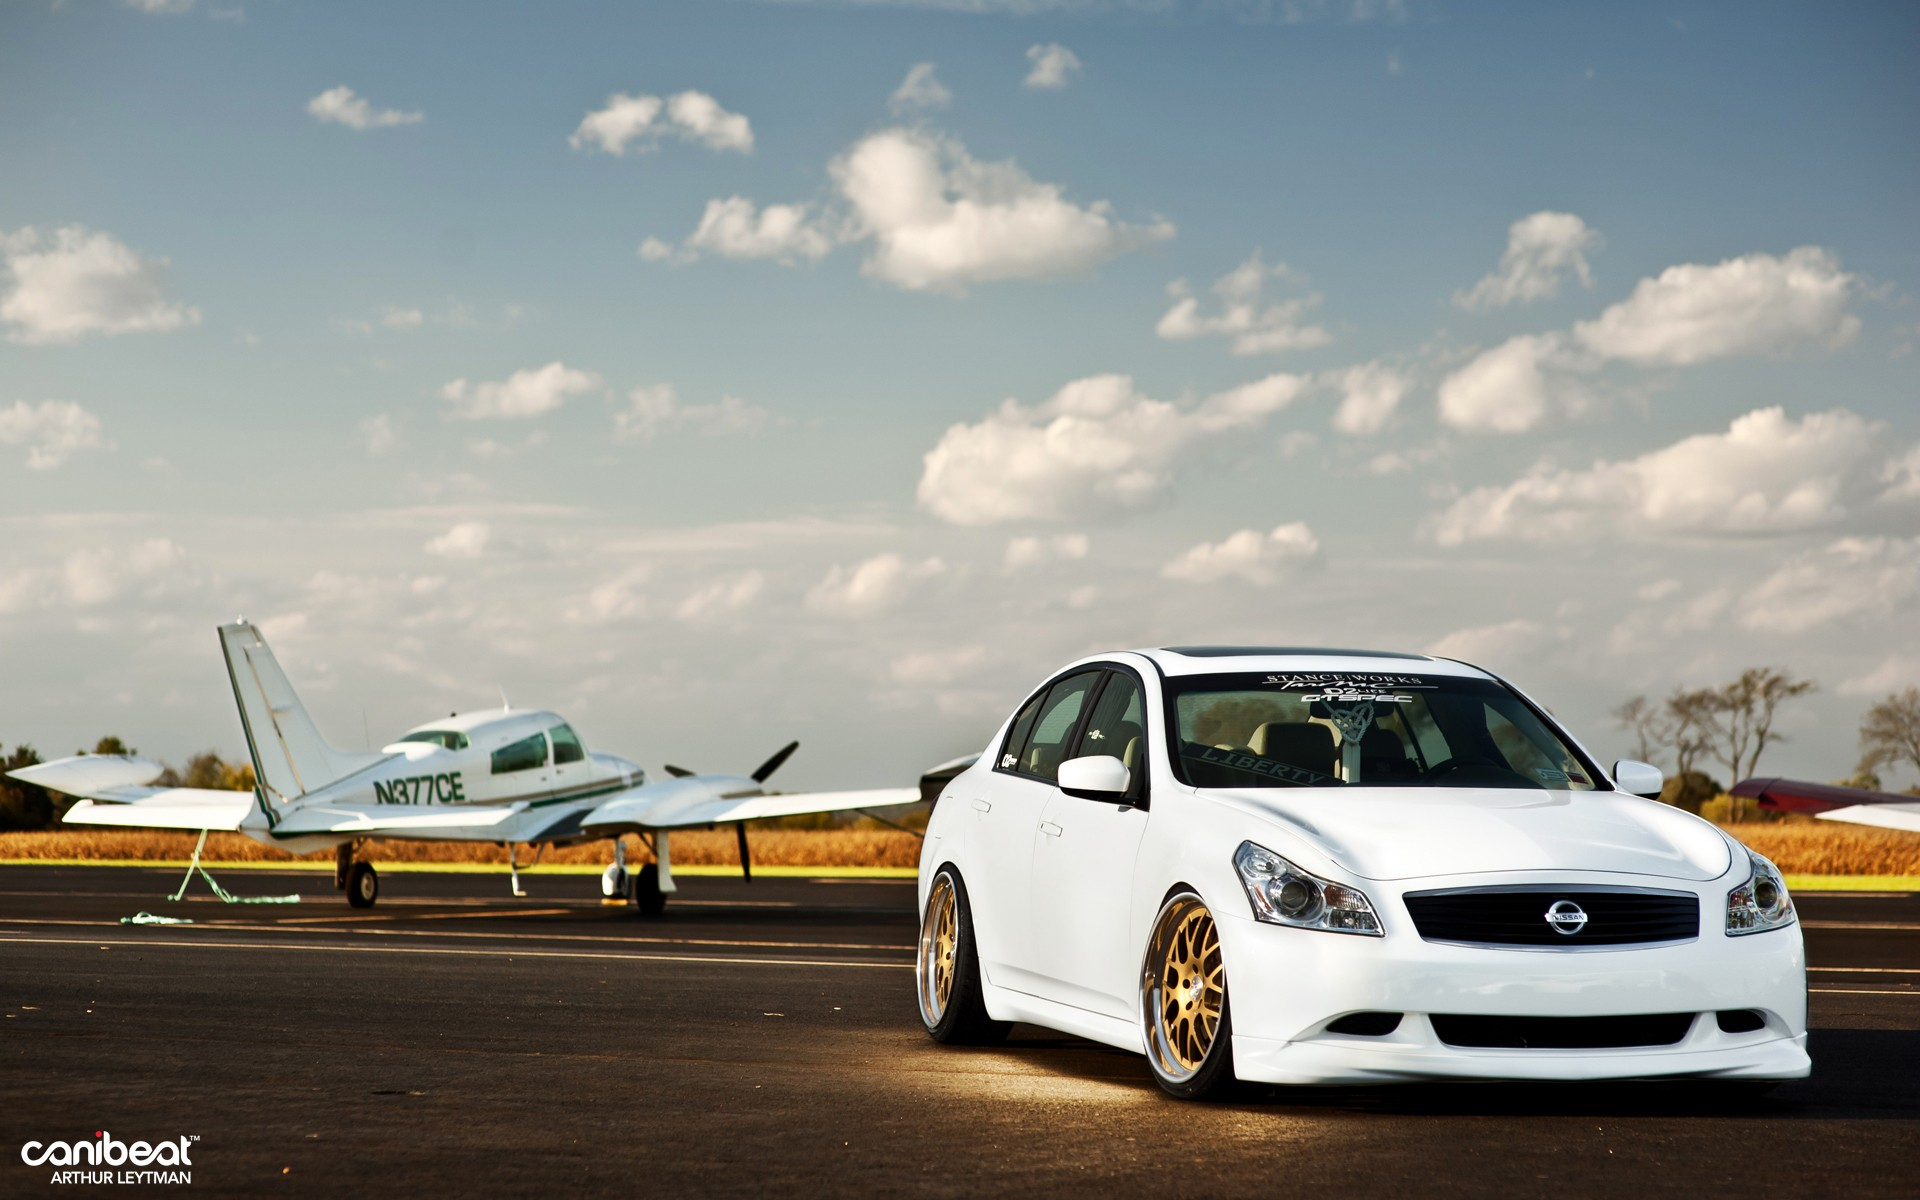 Cars Wallpapers: Nissan G37 Wallpaper